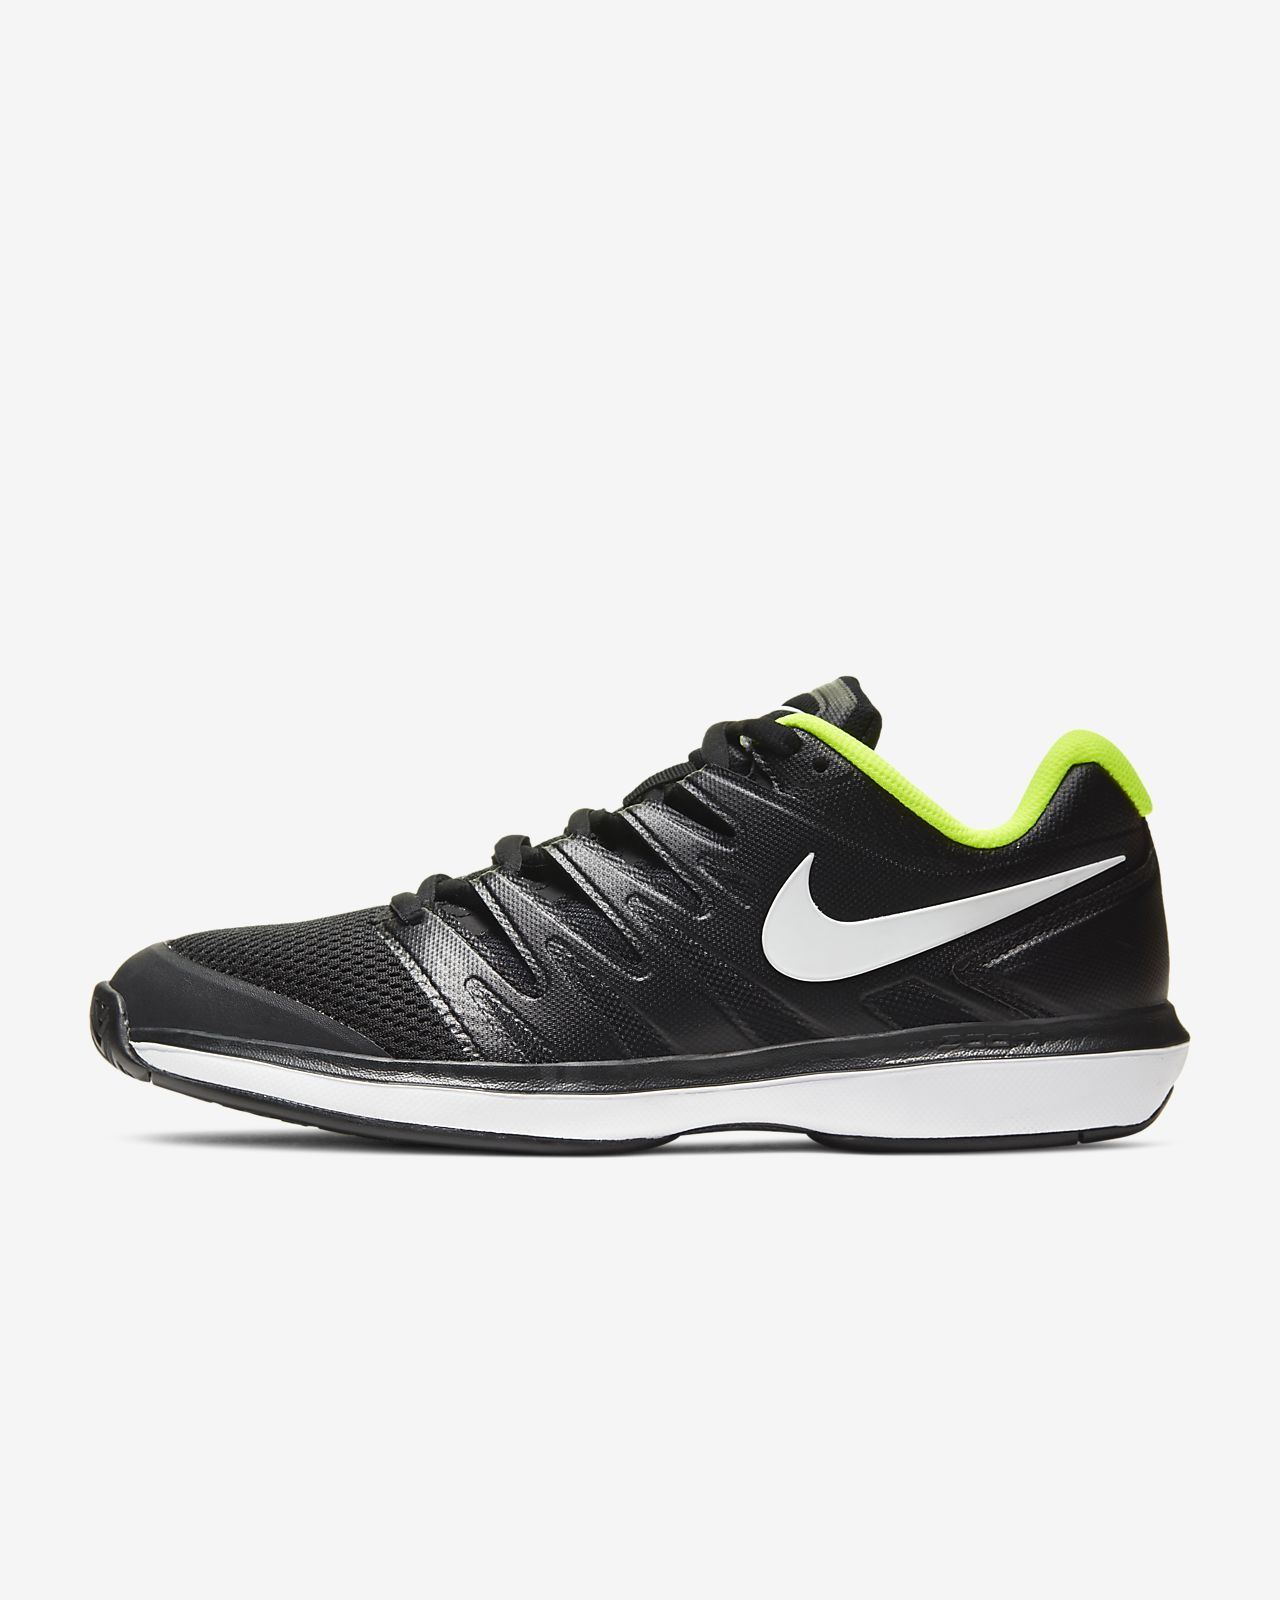 NikeCourt Air Zoom Prestige Men's Tennis Shoe